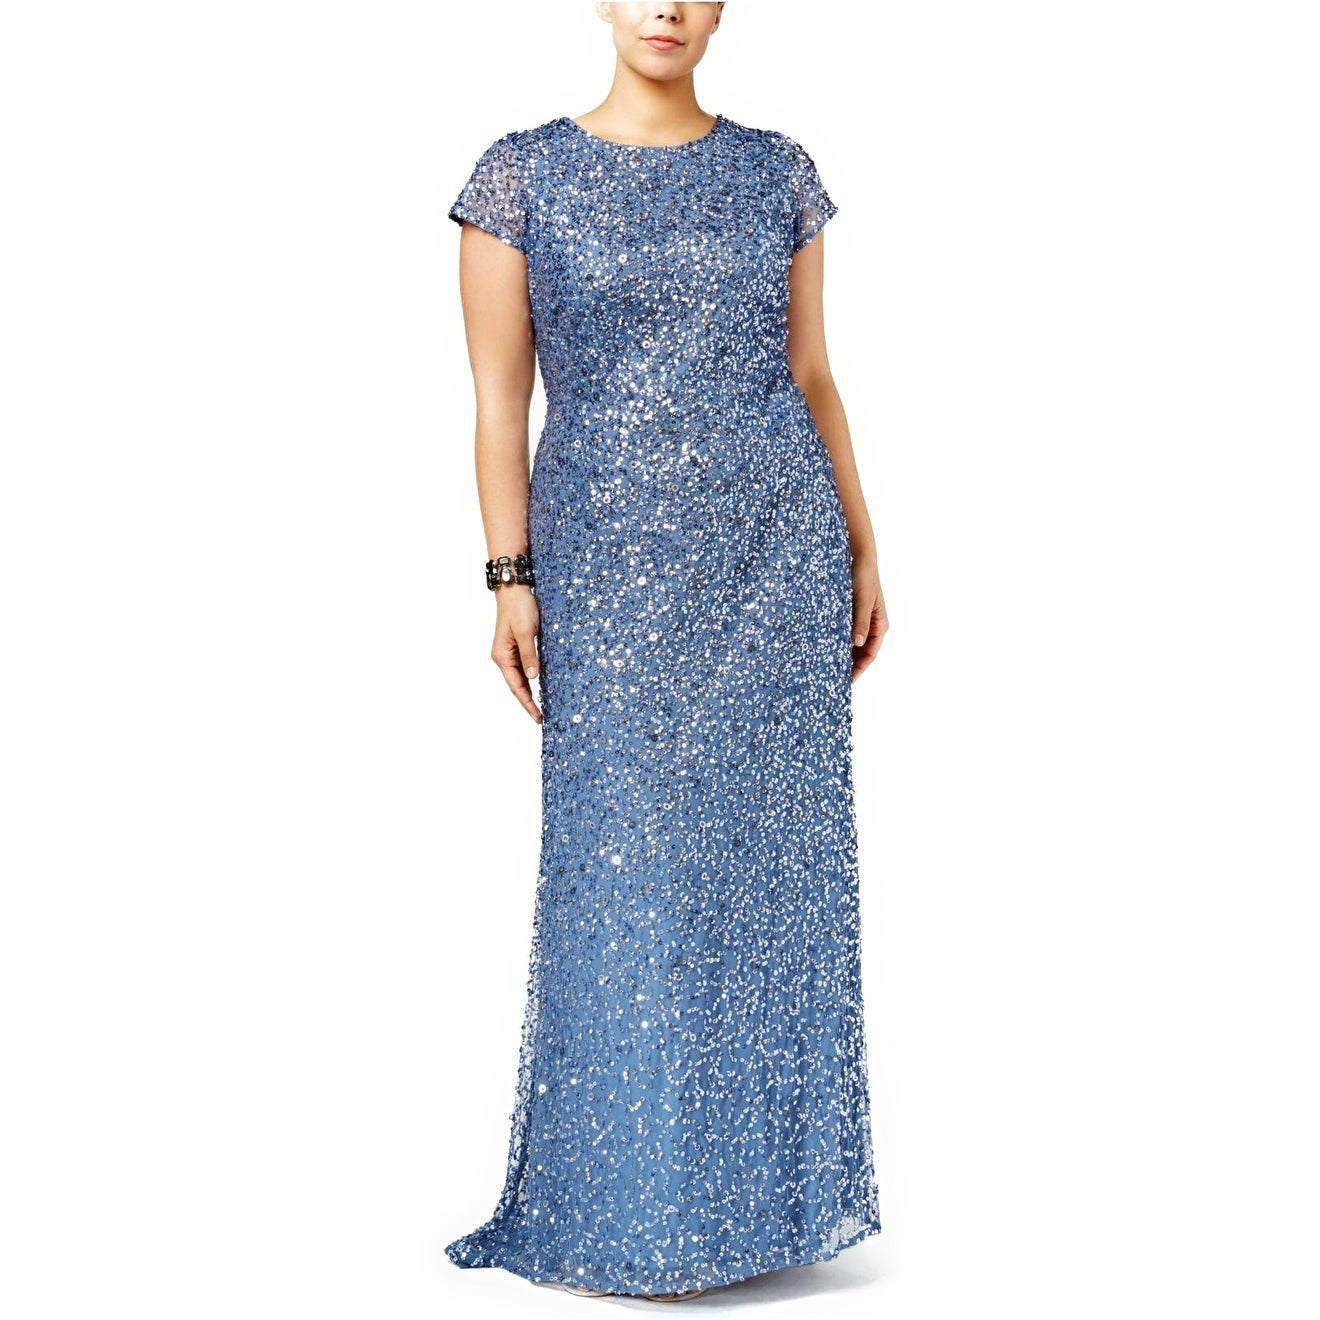 Adrianna Papell Plus Size Embellished Evening Gown Dress - 14W ...